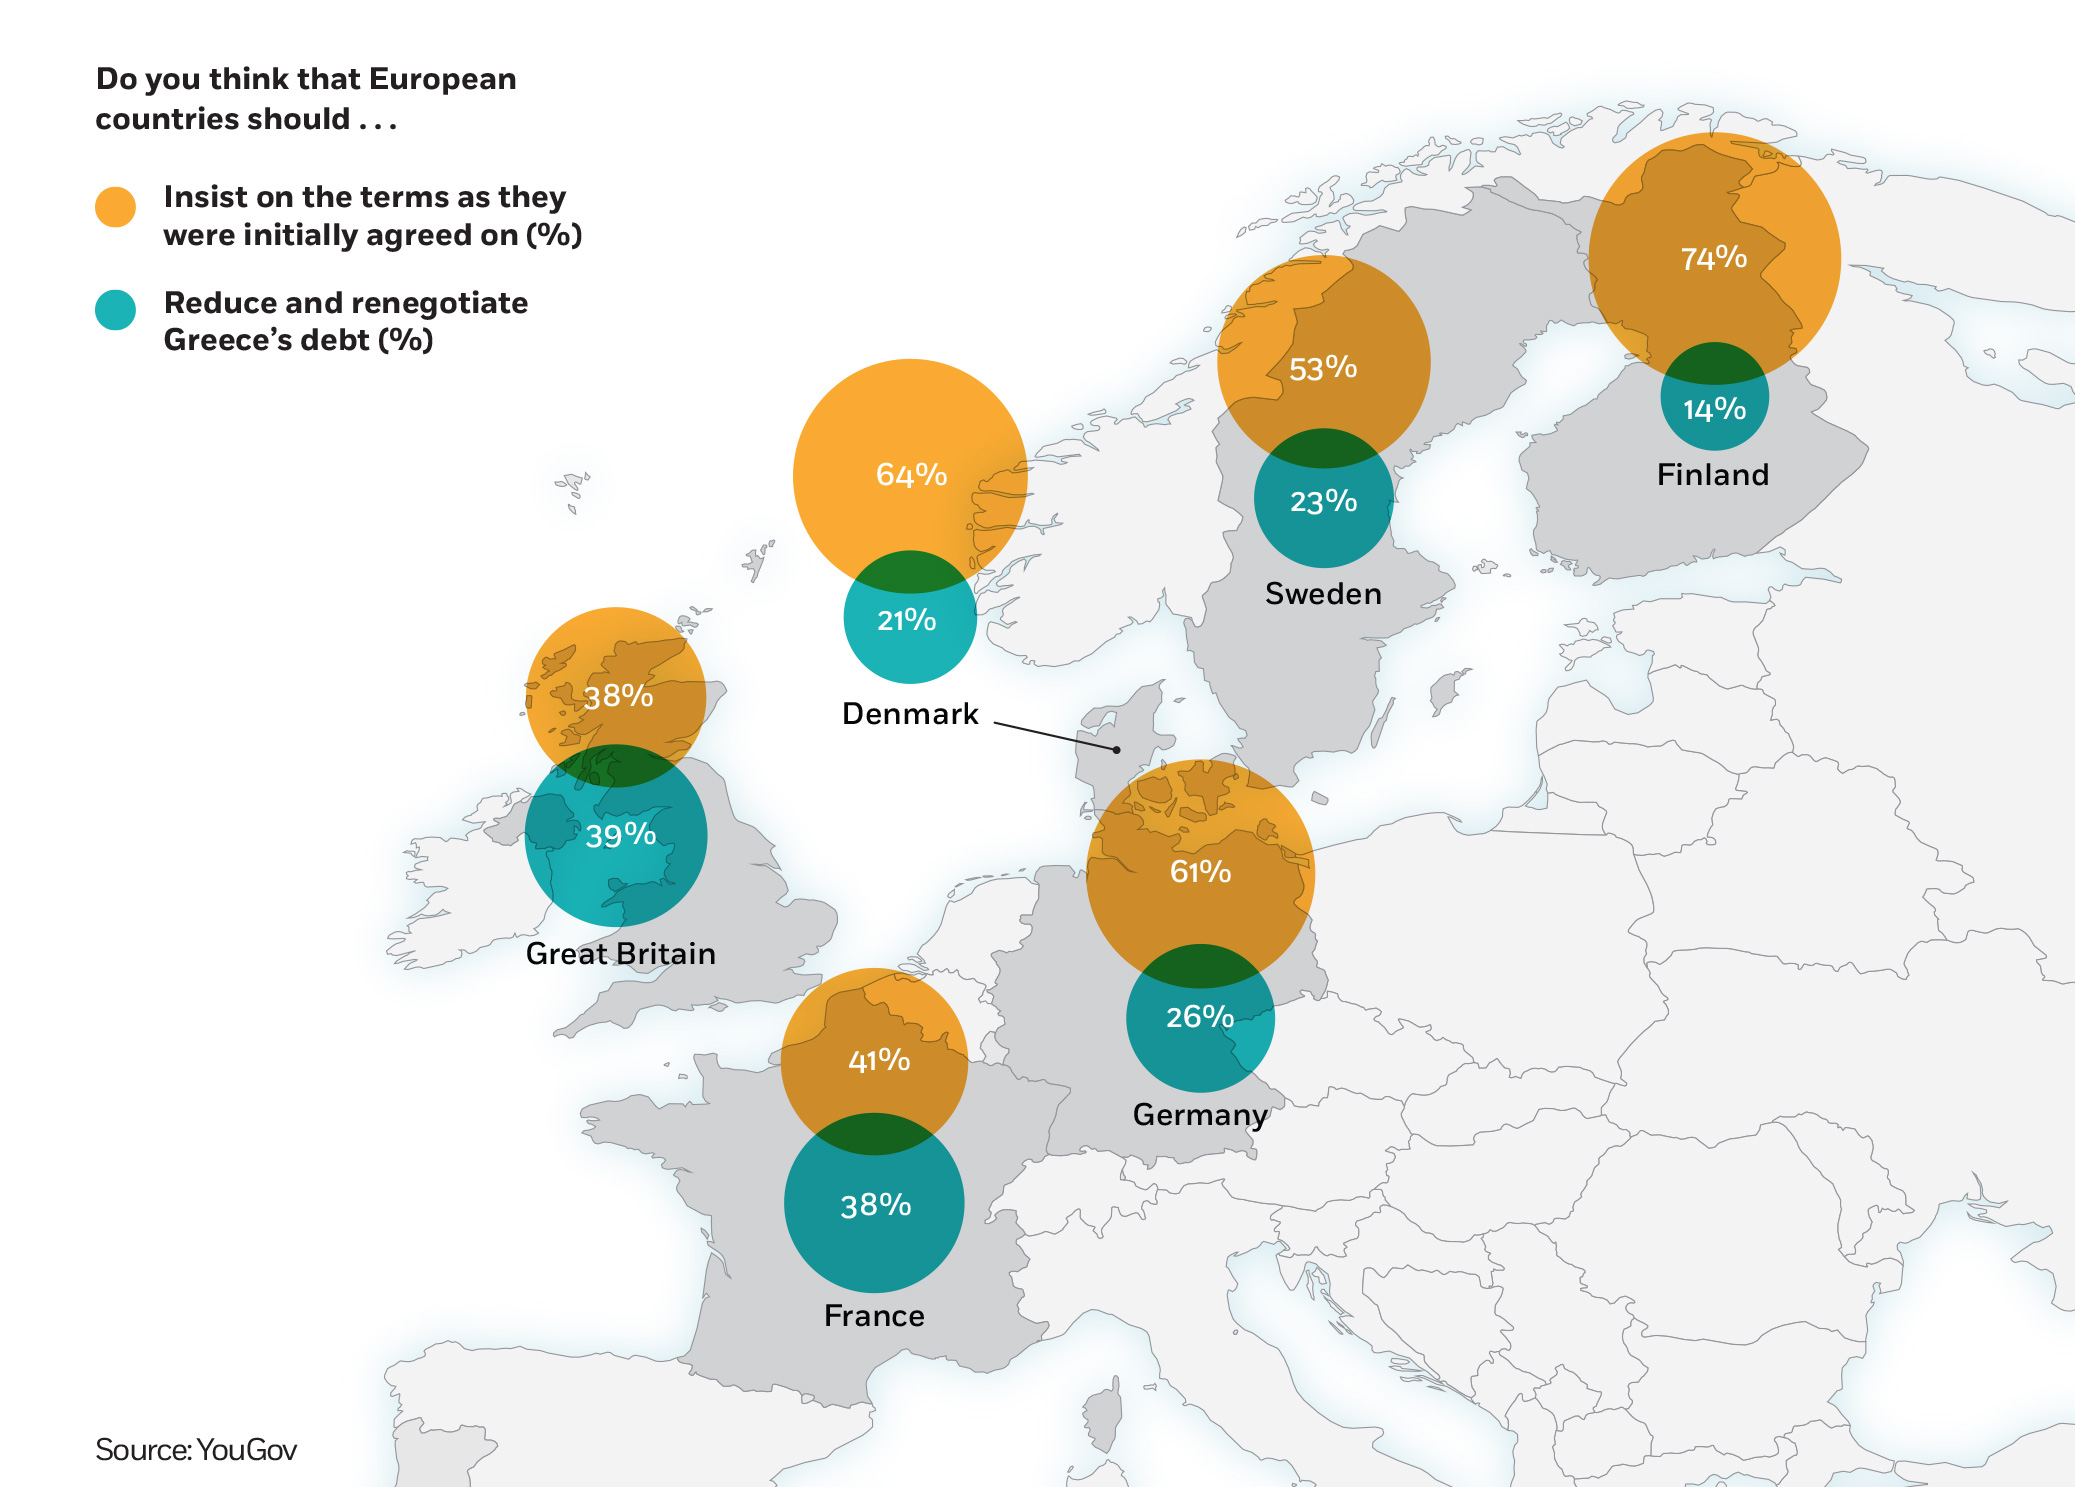 Map showing Europeans' opinions on Greece's debt